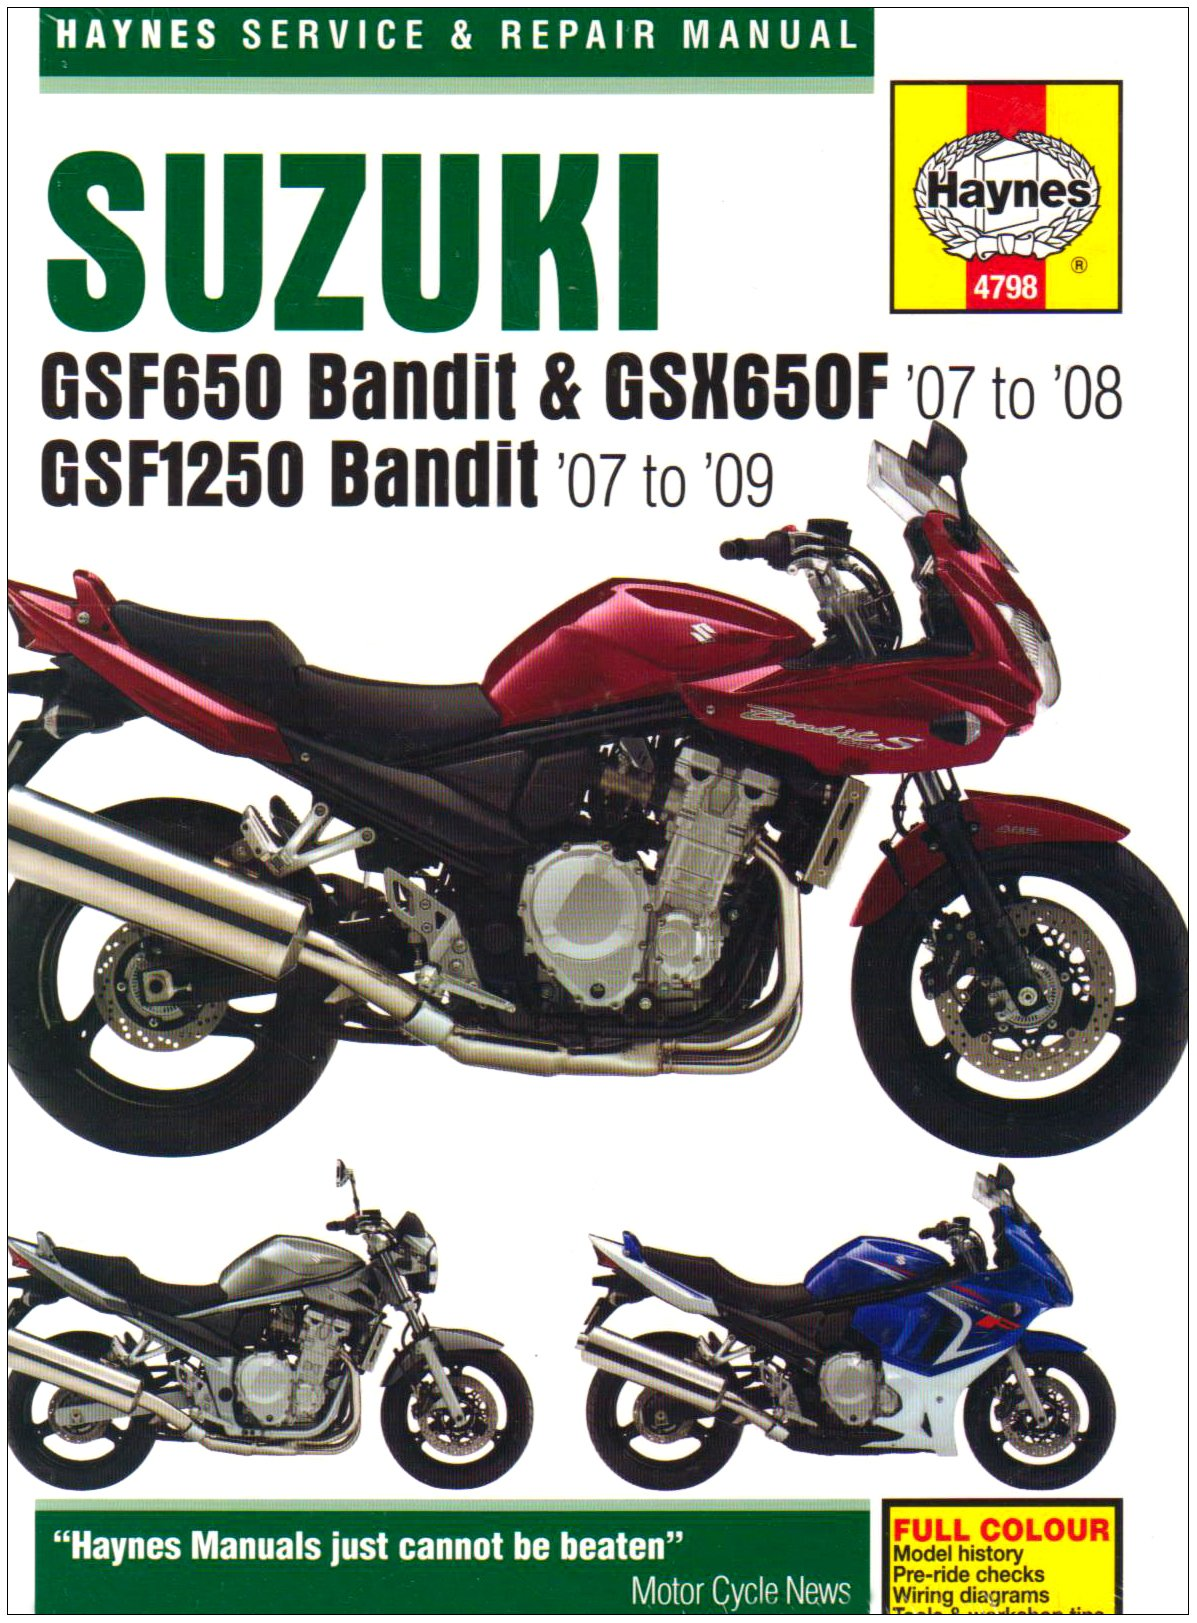 Suzuki Gsf650 1250 Bandit And Gsx650fservice Repair Manual 2007 81 650 Wiring Diagram To 2009 Haynes Service Manuals Phil Mather 9781844257980